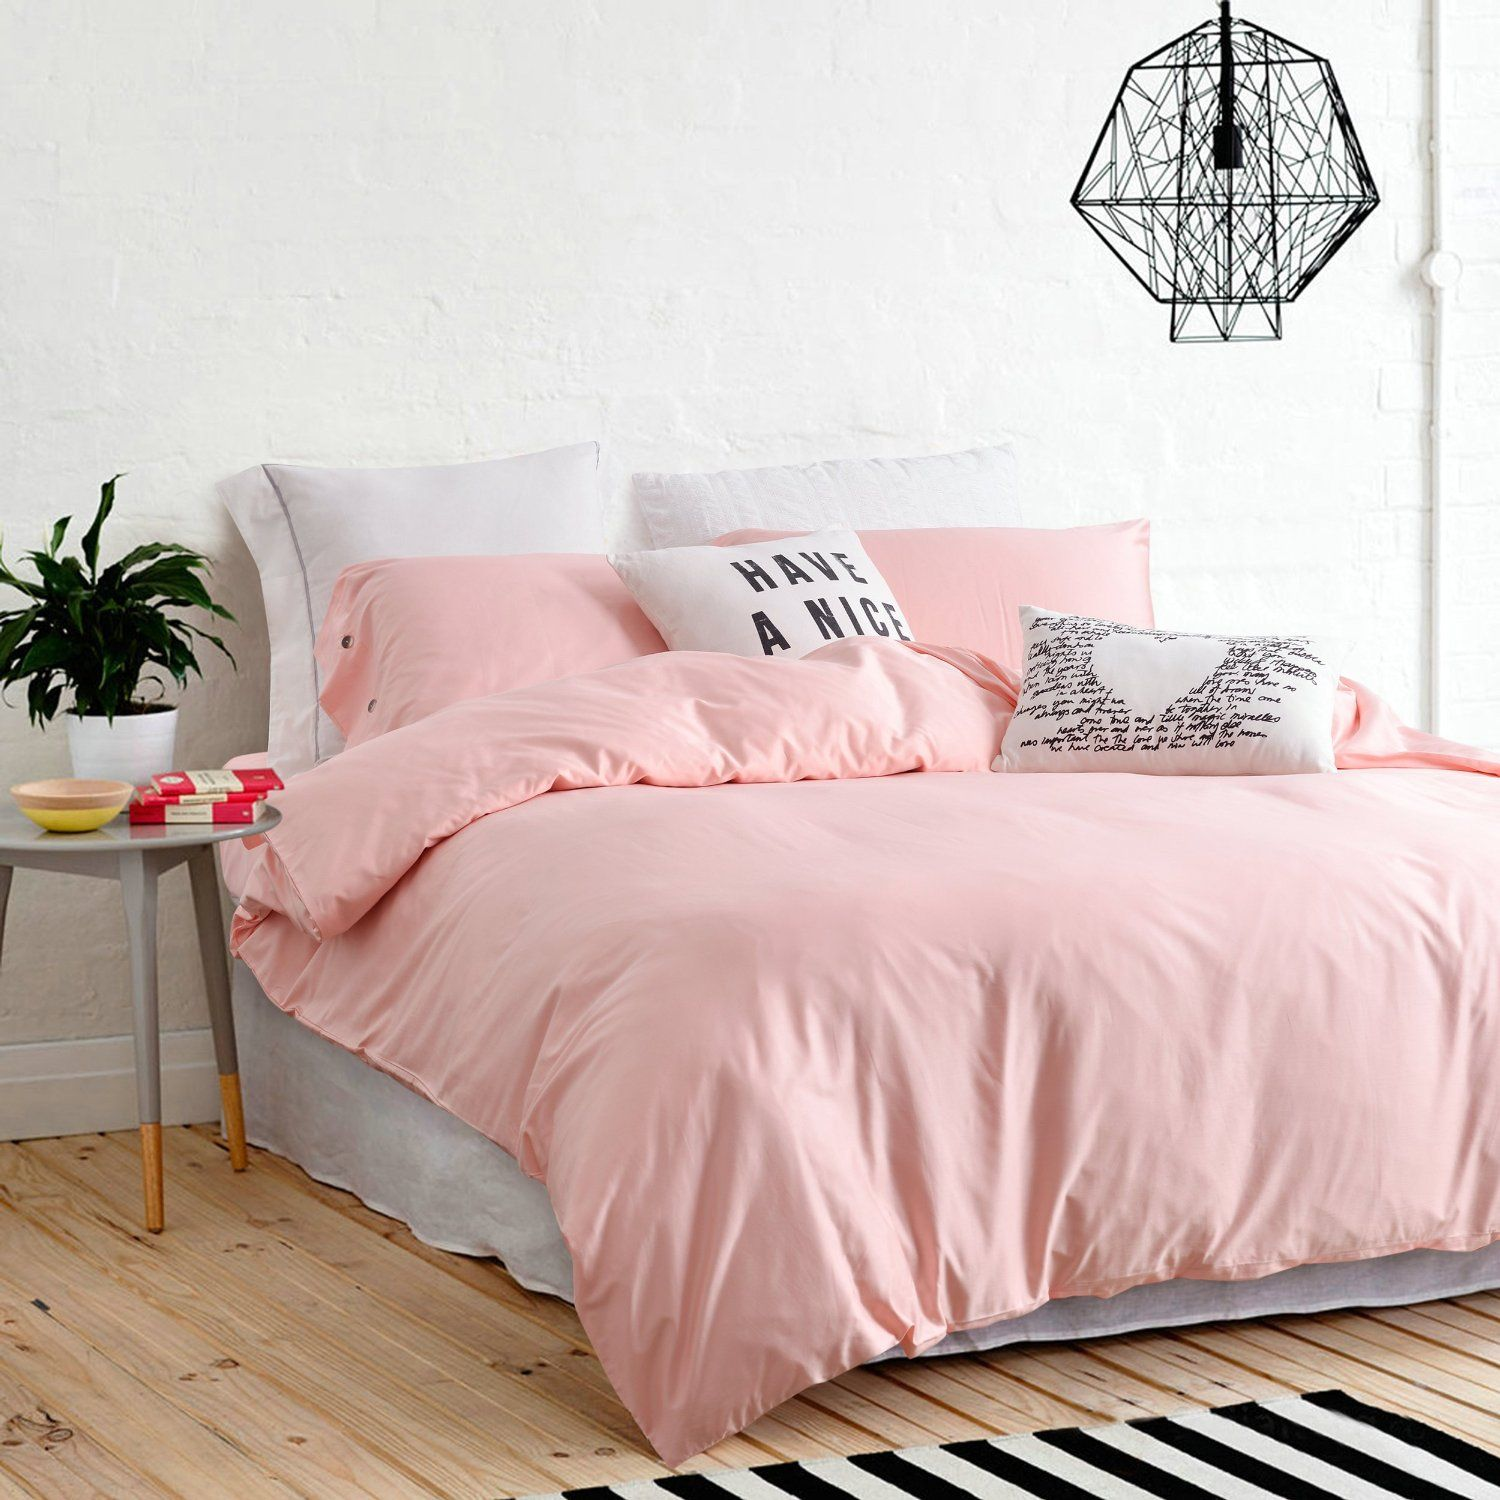 ufo home 300 thread count 100 cotton sateen light pink solid color pretty girly type 4pc duvet. Black Bedroom Furniture Sets. Home Design Ideas